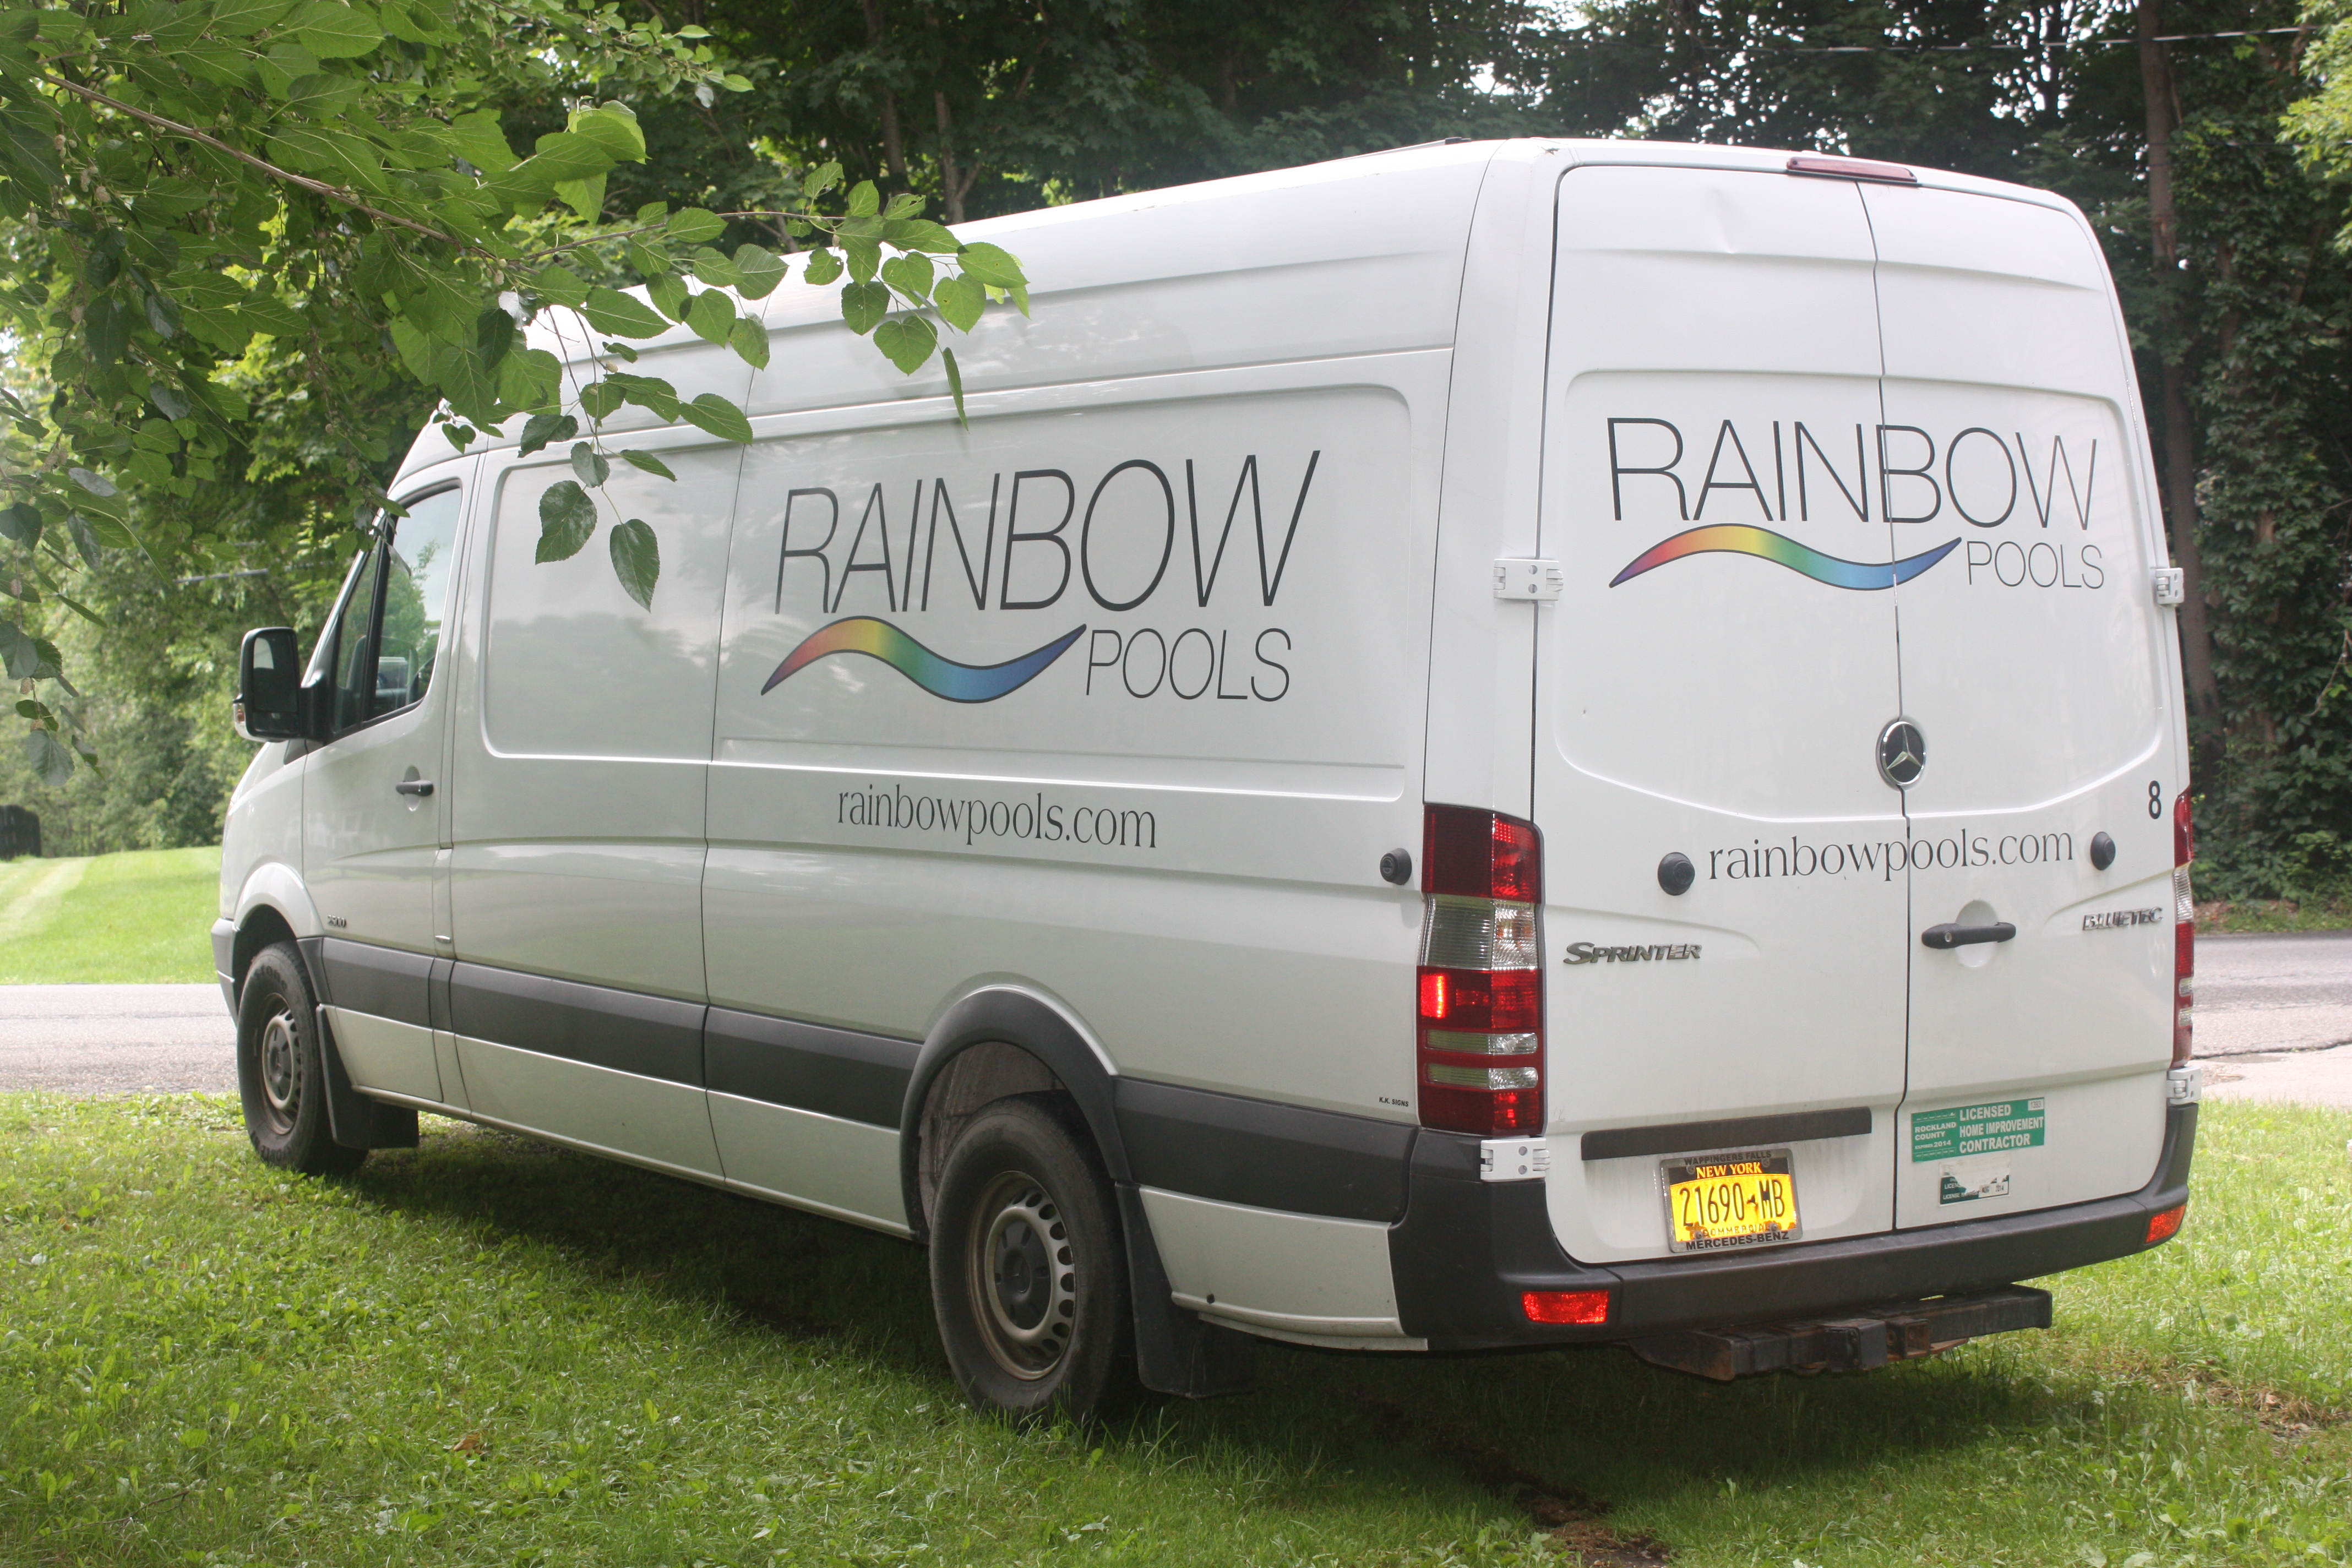 Rainbow Pools logo & branding